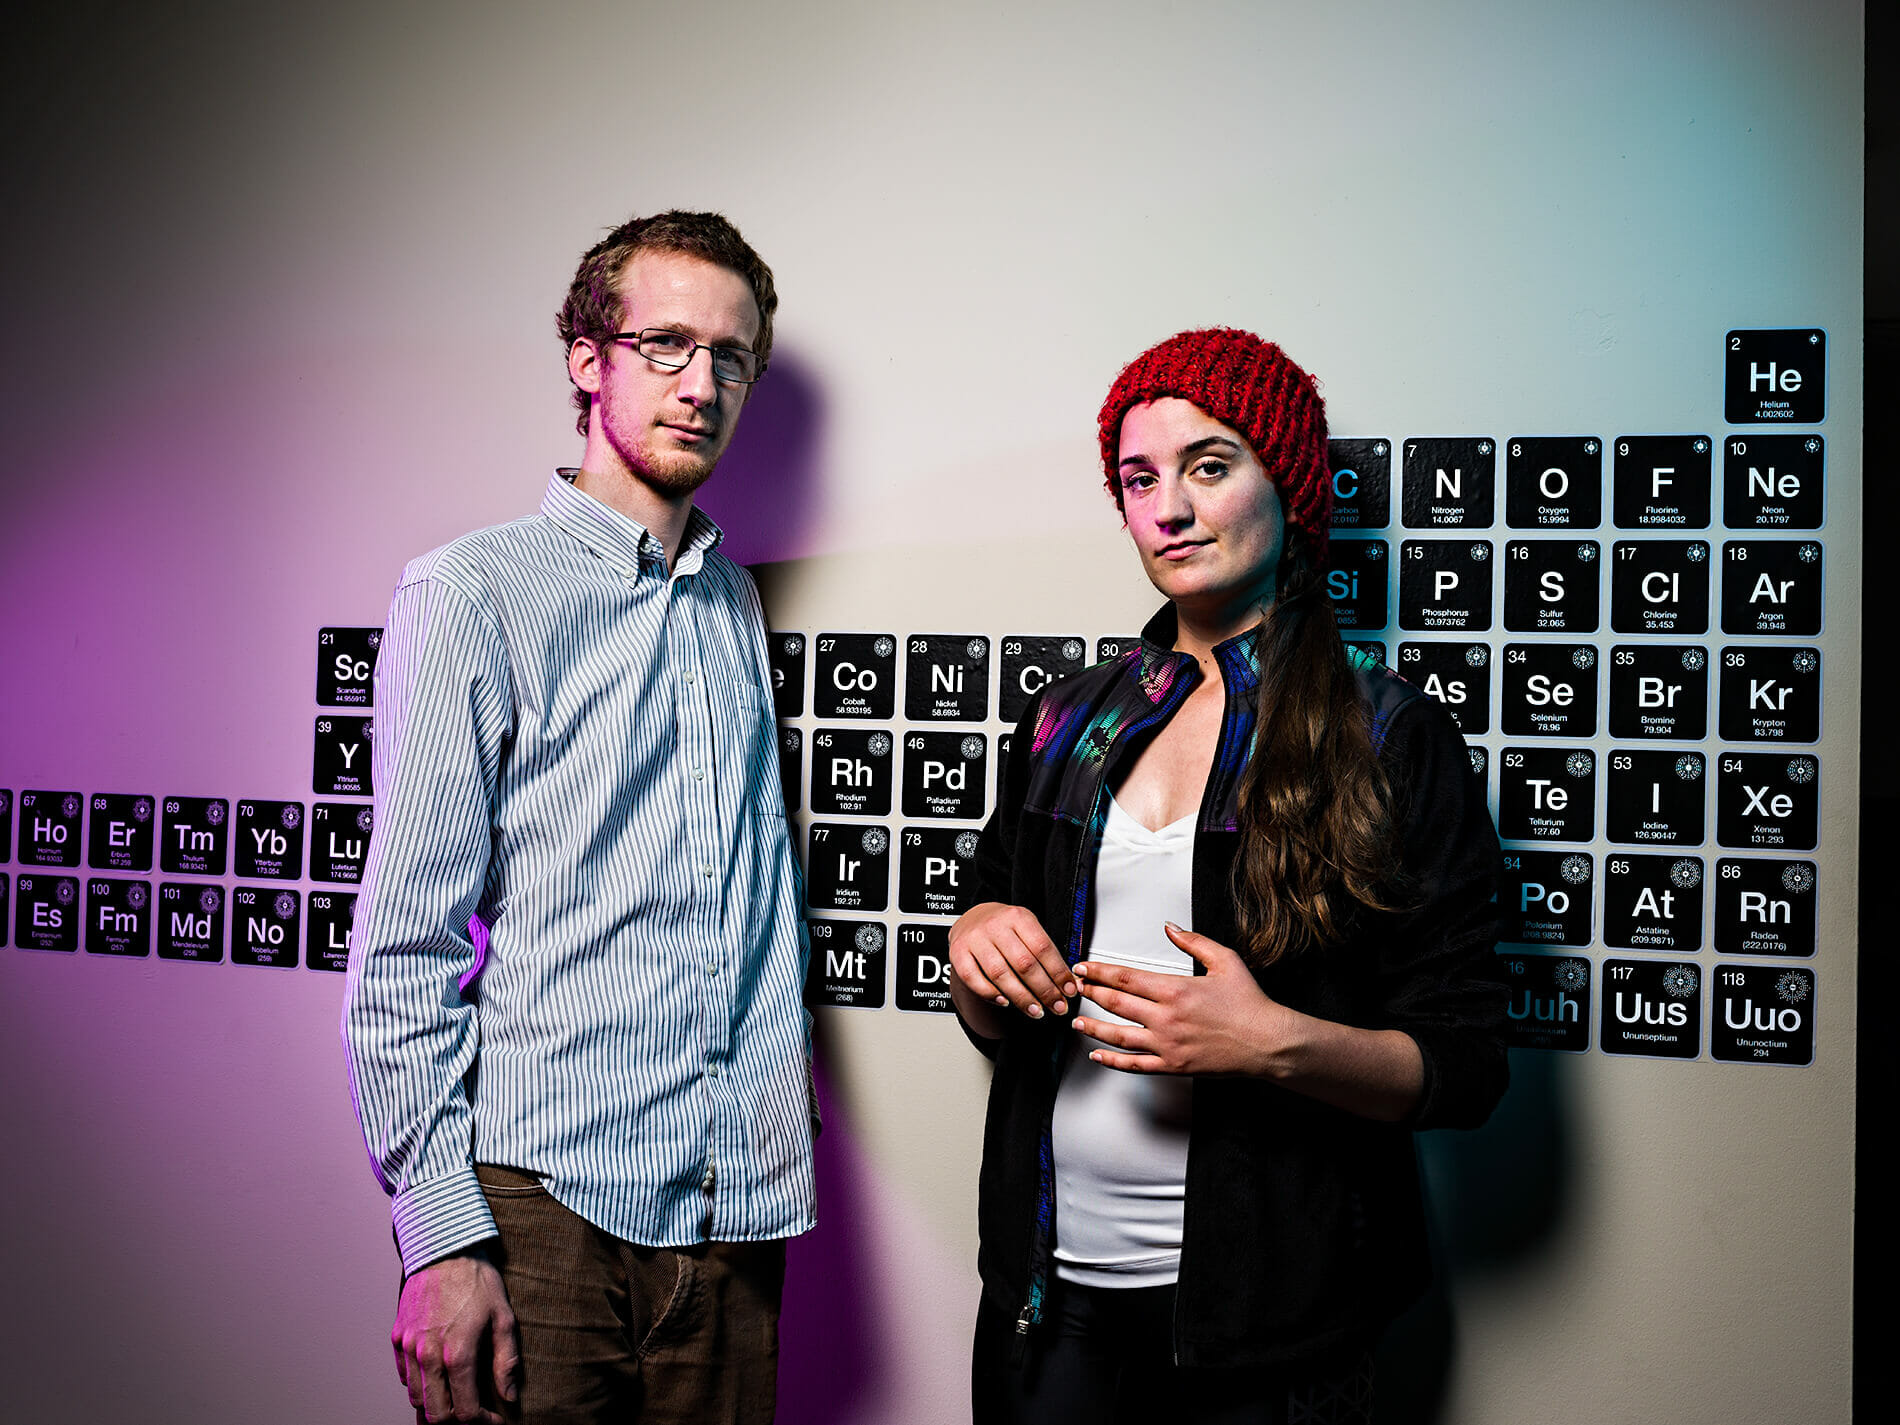 Alex Neckelmann & Jennifer Kaehms of Bioloop